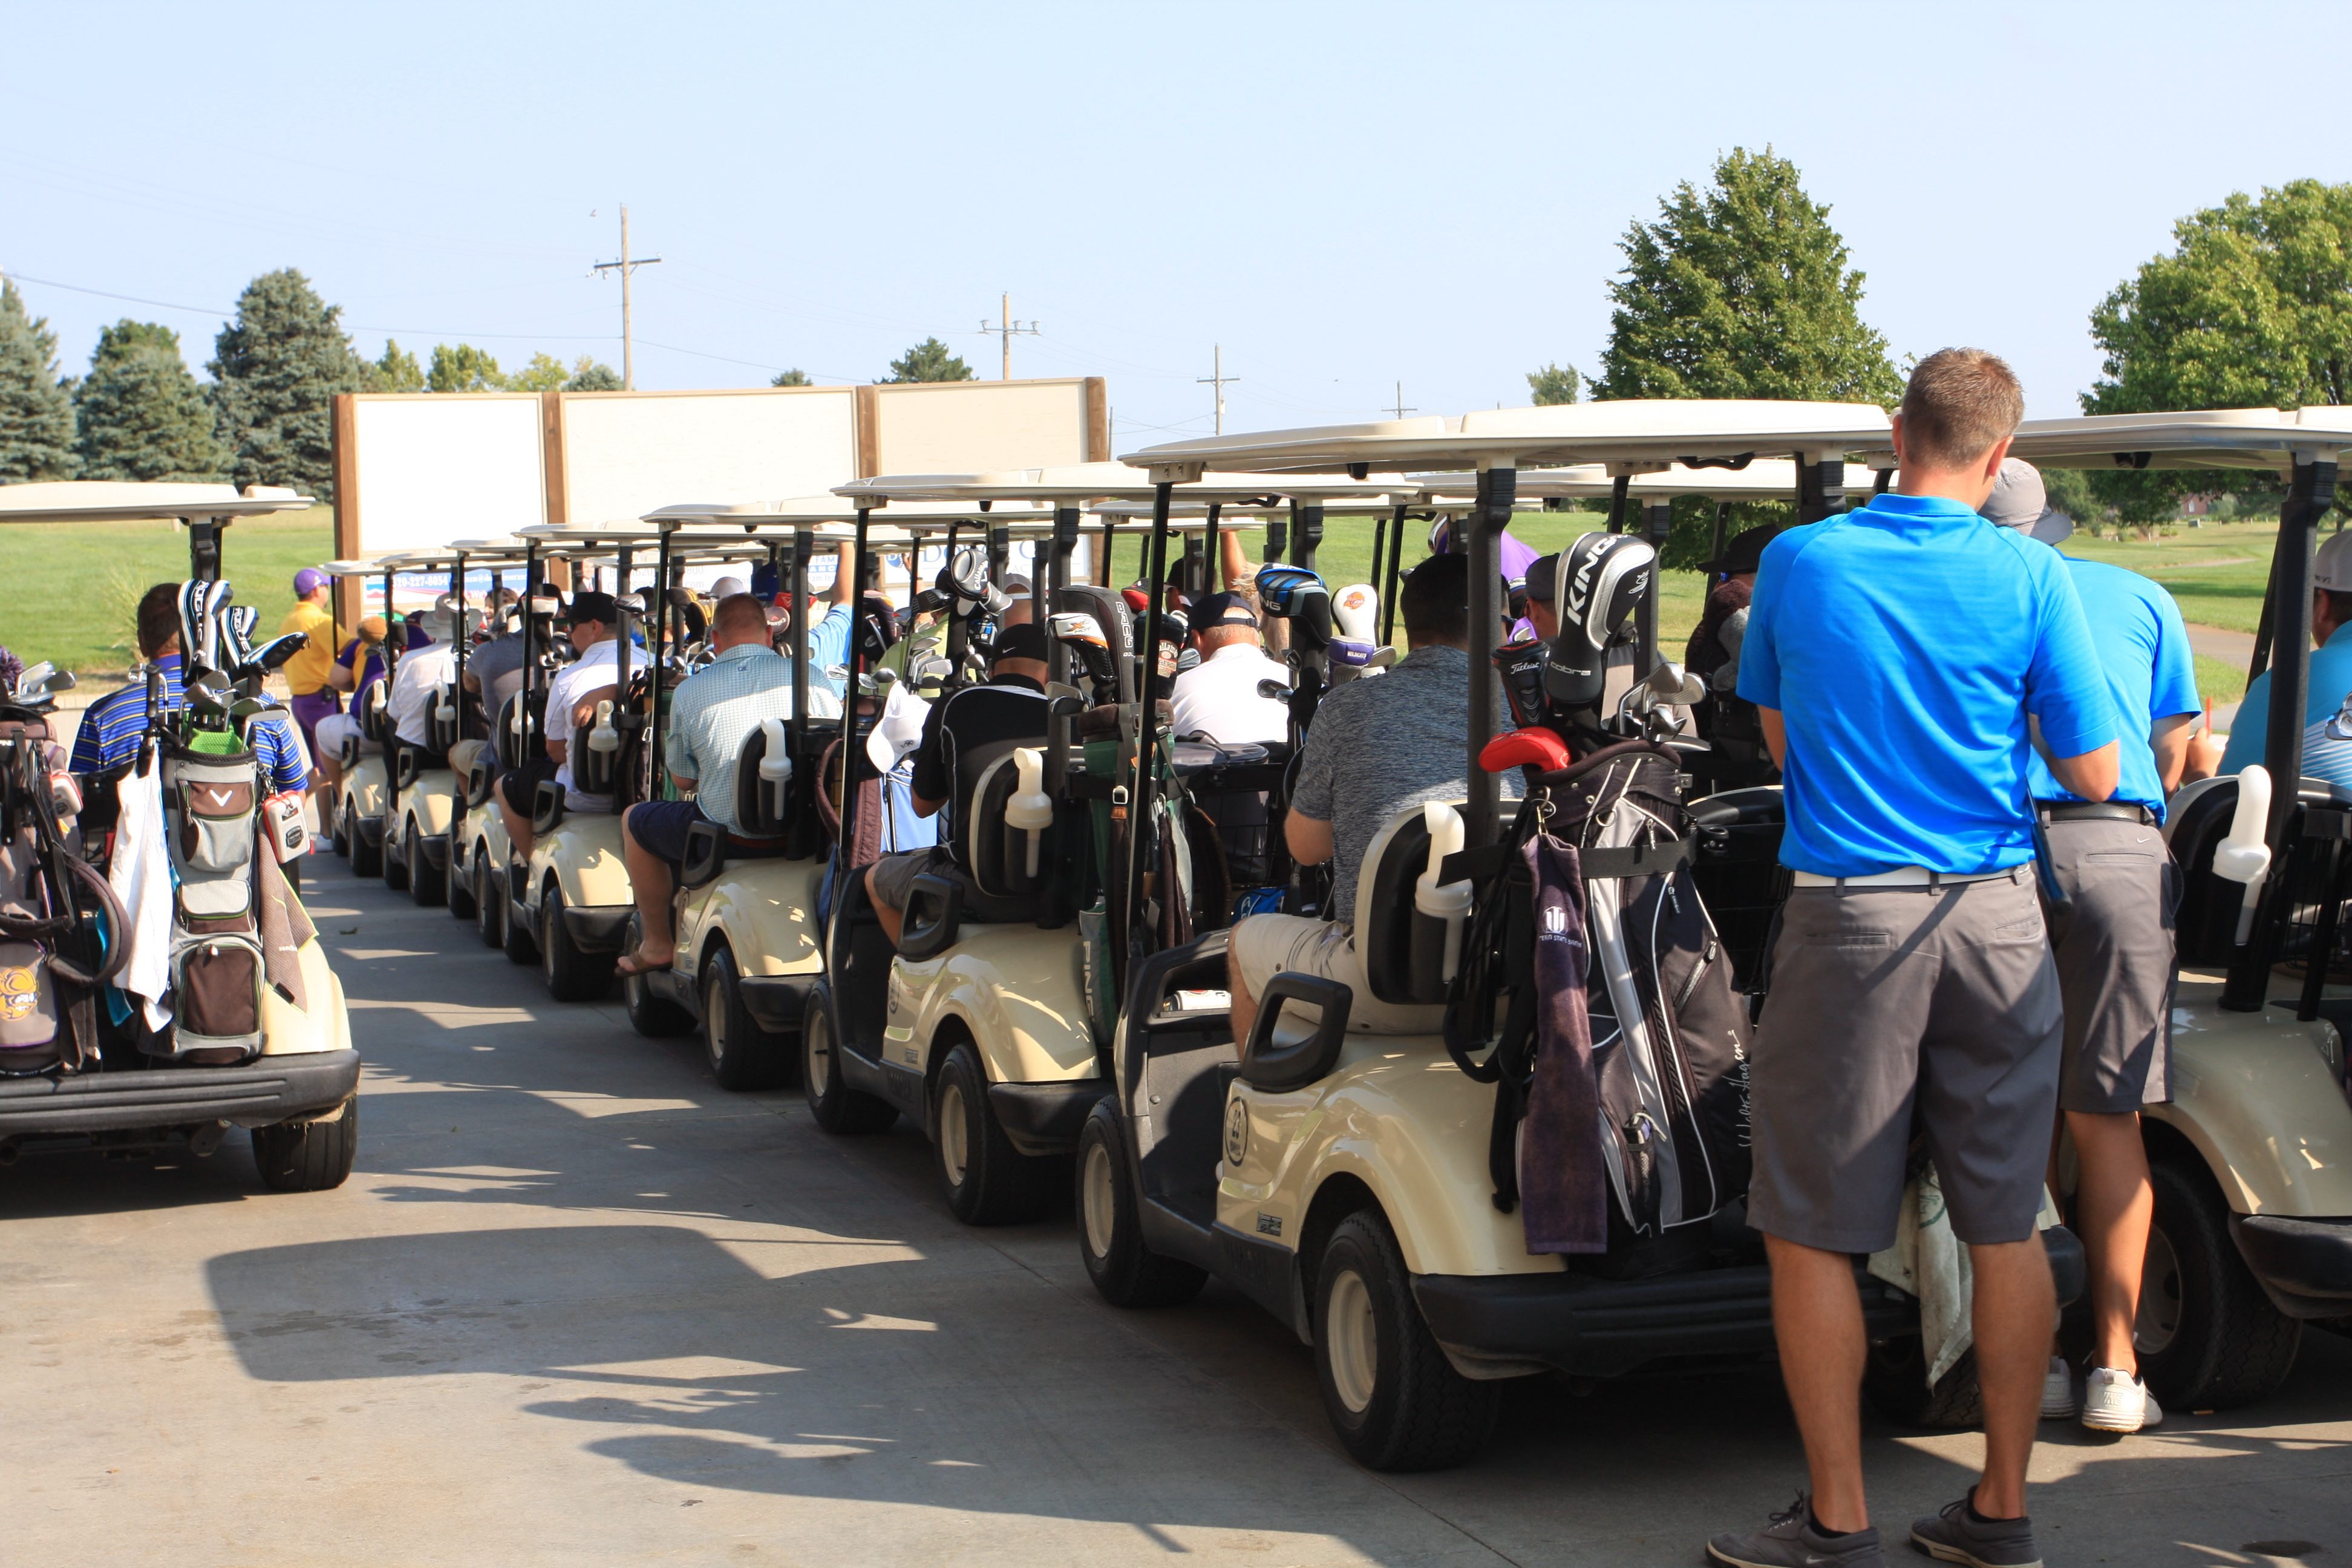 Golfers load their carts in preparation for the shotgun start to the 2018 DC3 Foundation Golf Classic